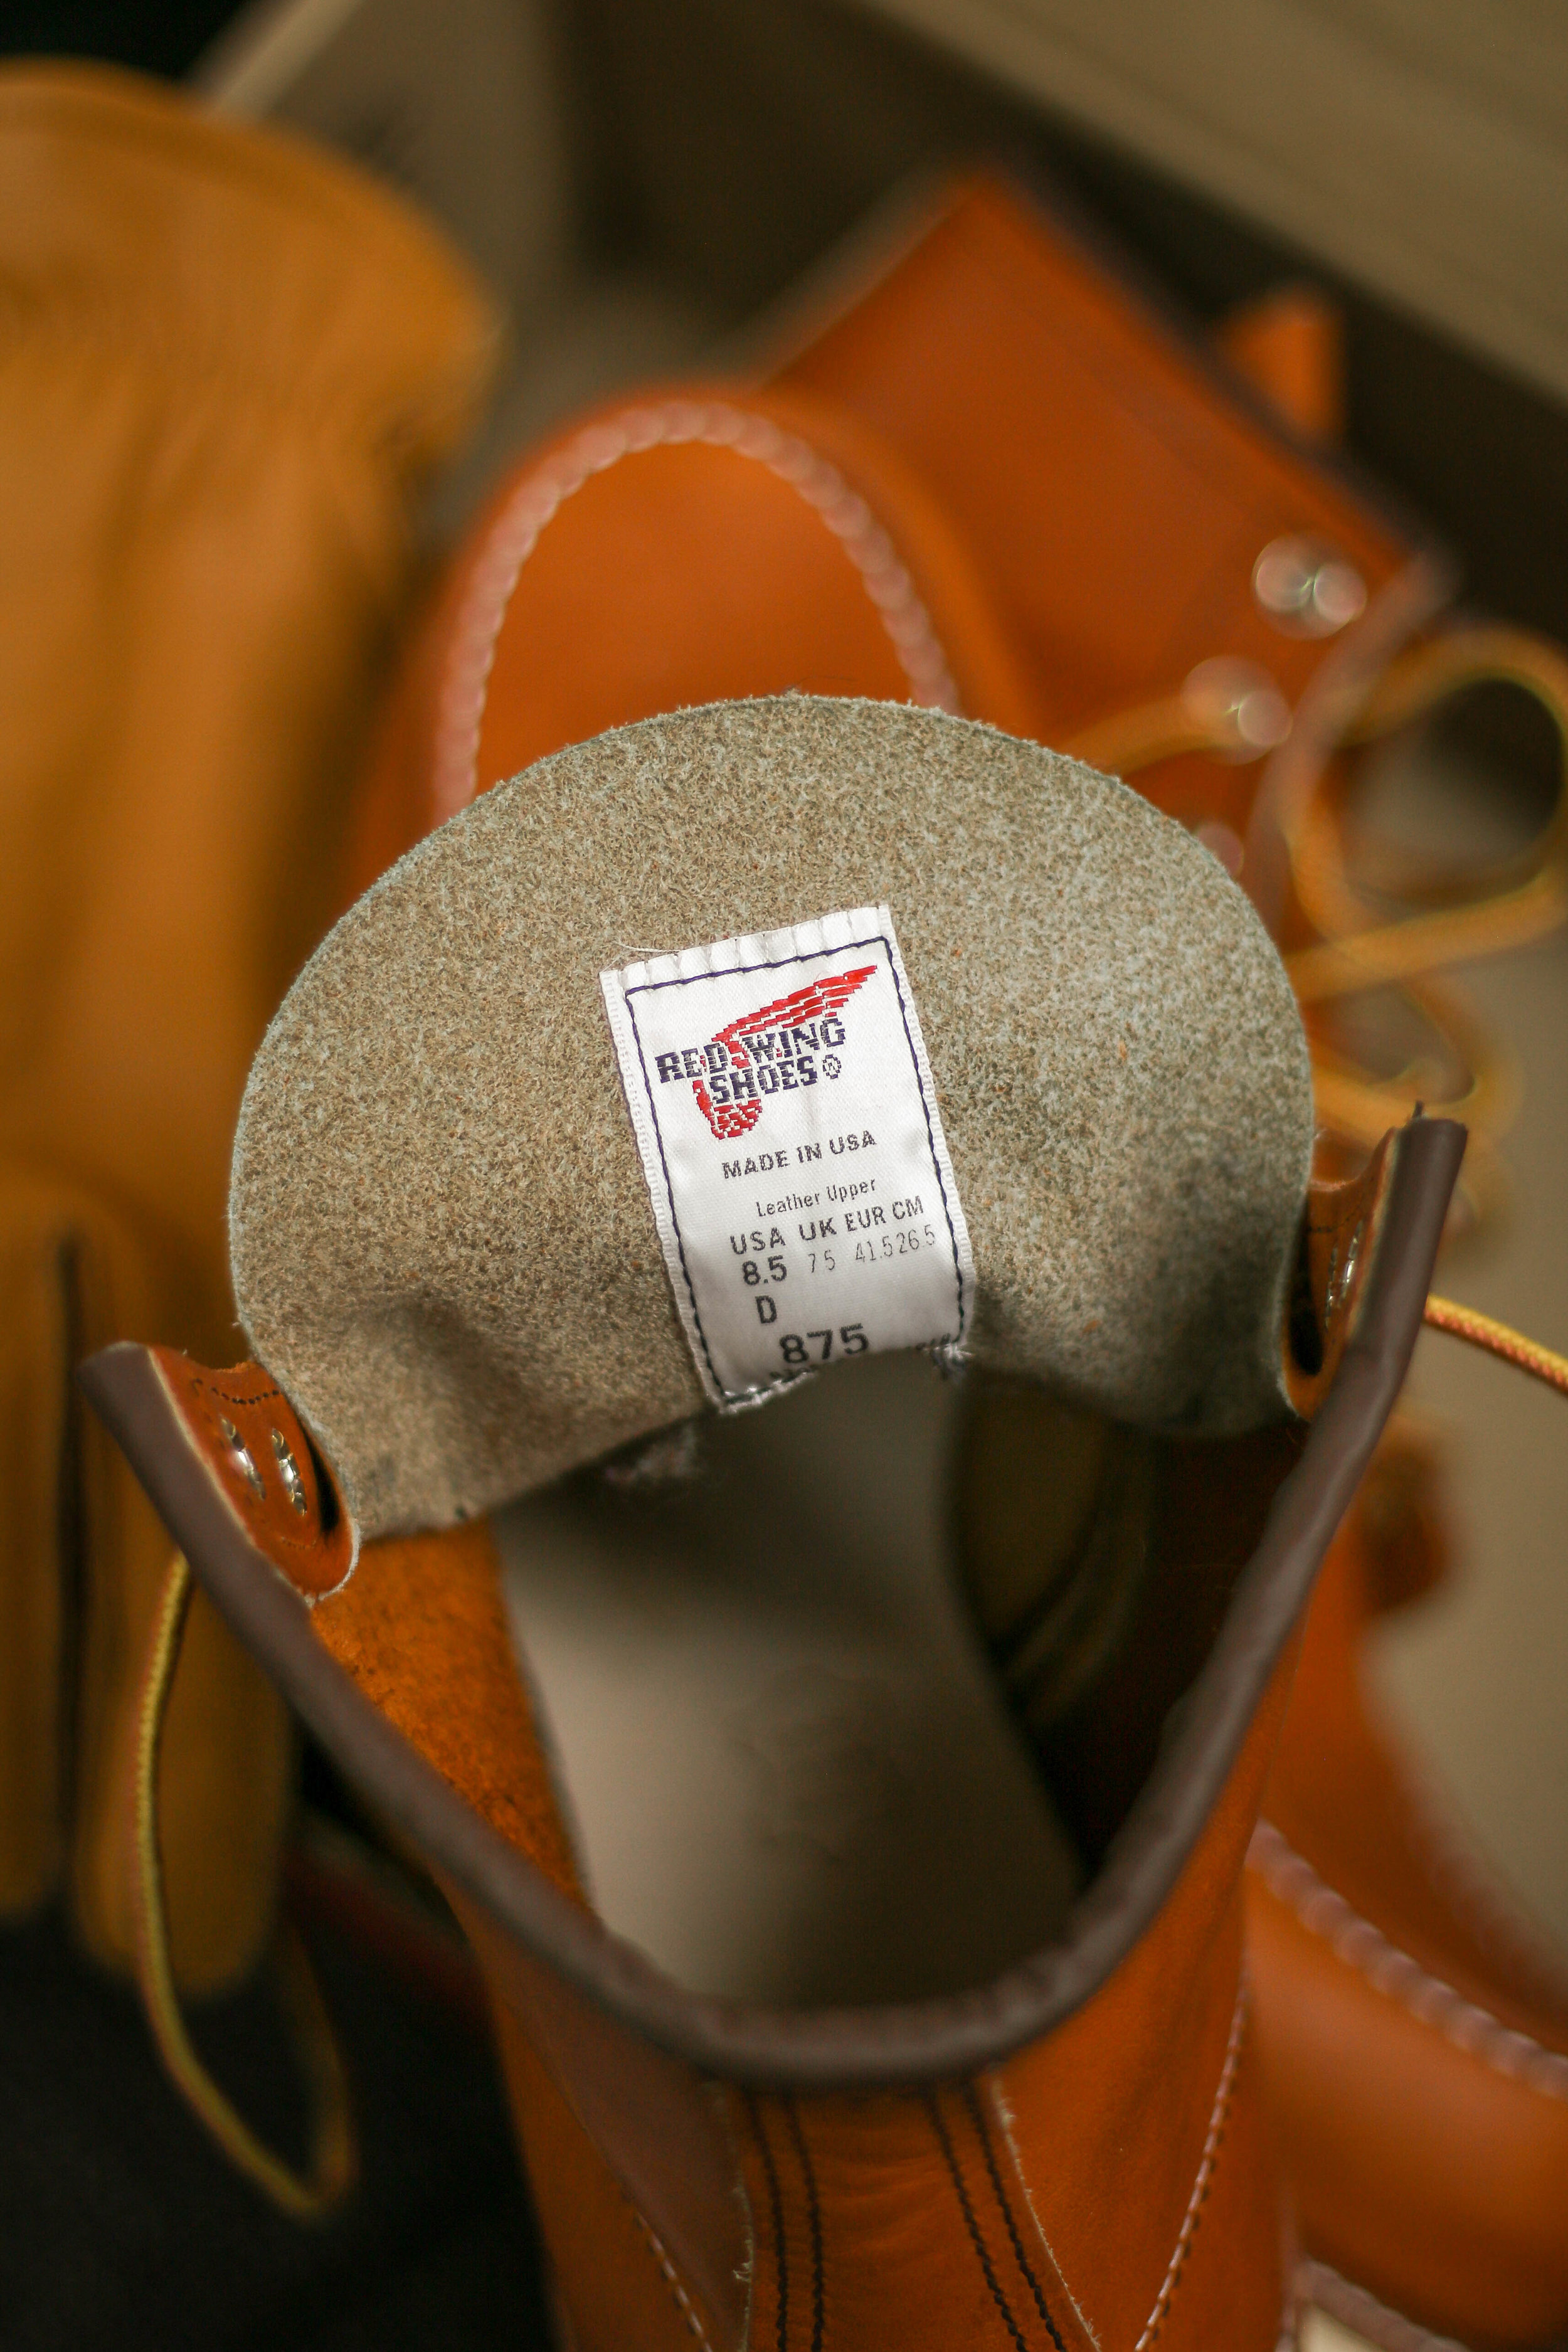 You can see the beauty of the unlined leather, and leather insole. The tag also deploys the M/Y it was made, and the model number. They have nothing to hide!